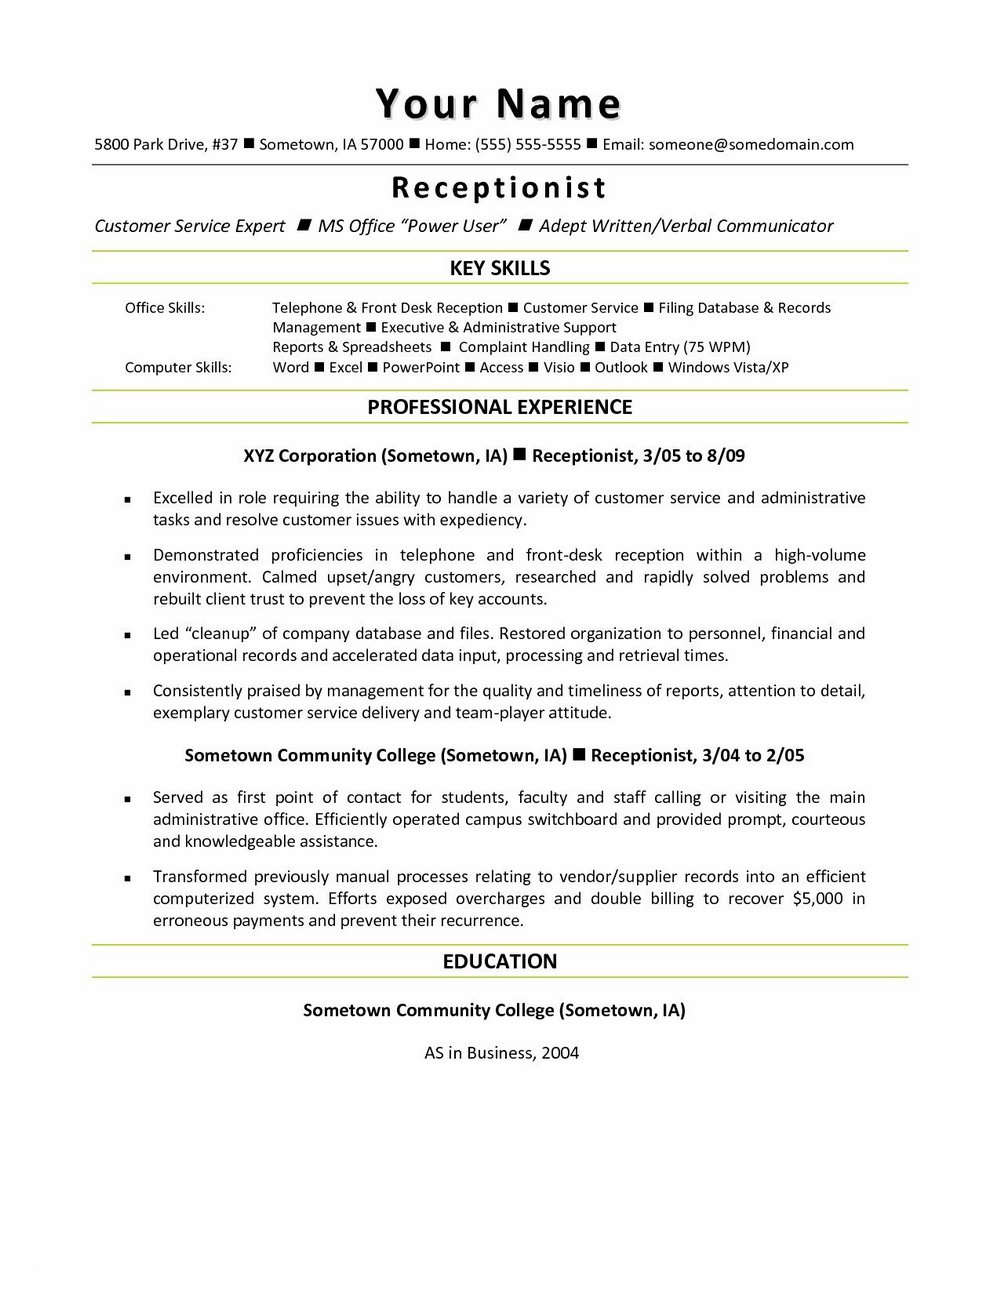 Best Job Sites To Post Resume